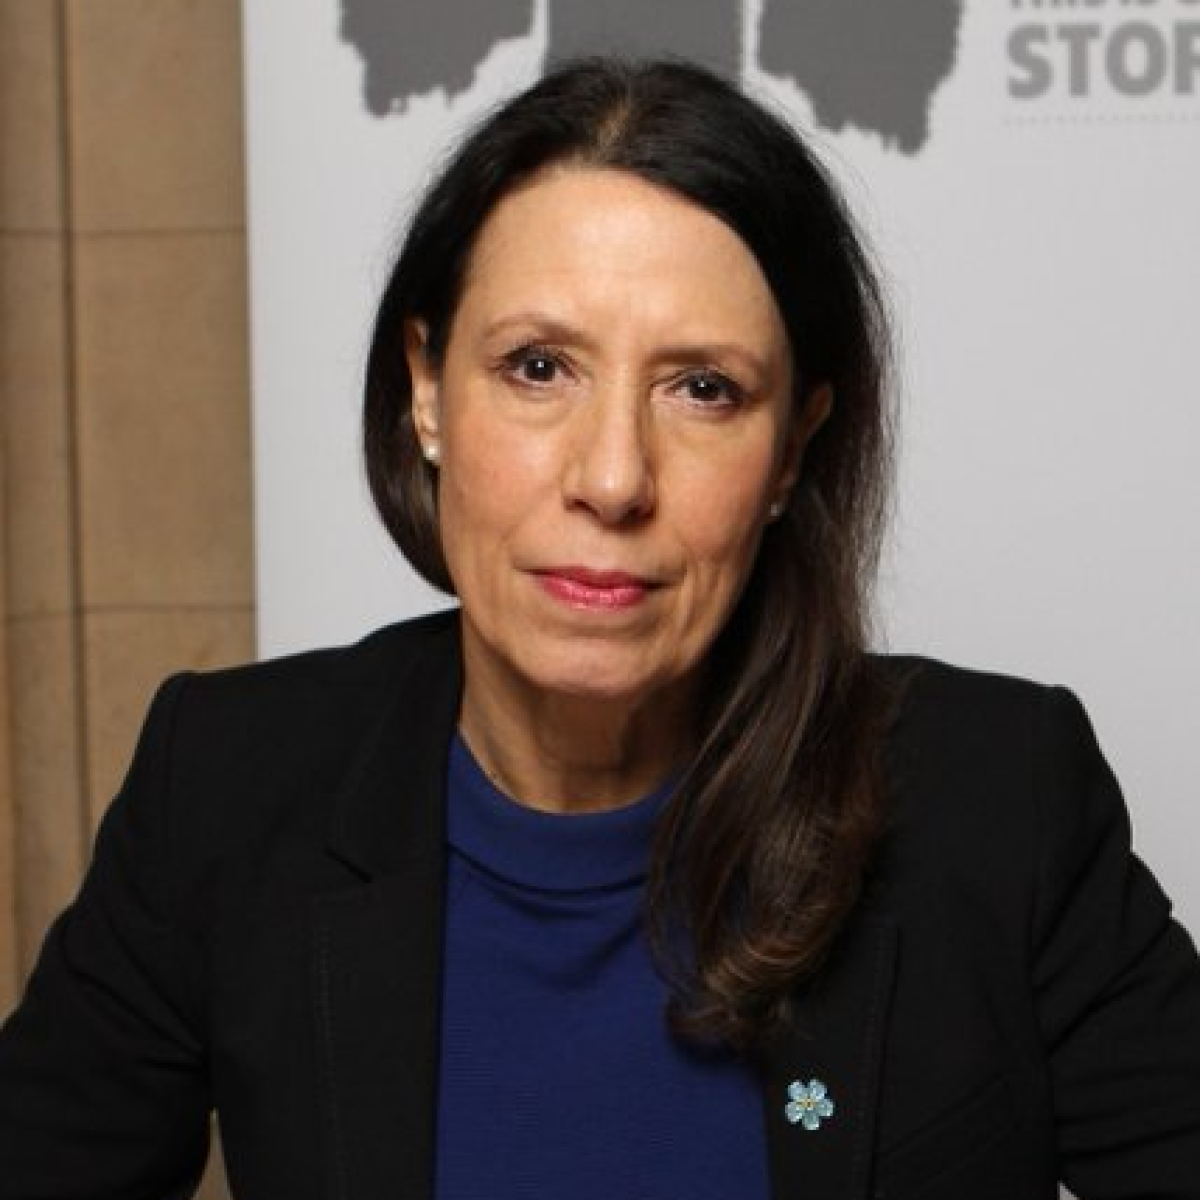 Labour MP Debbie Abrahams, who criticized abrogation of Article 370, denied entry in India